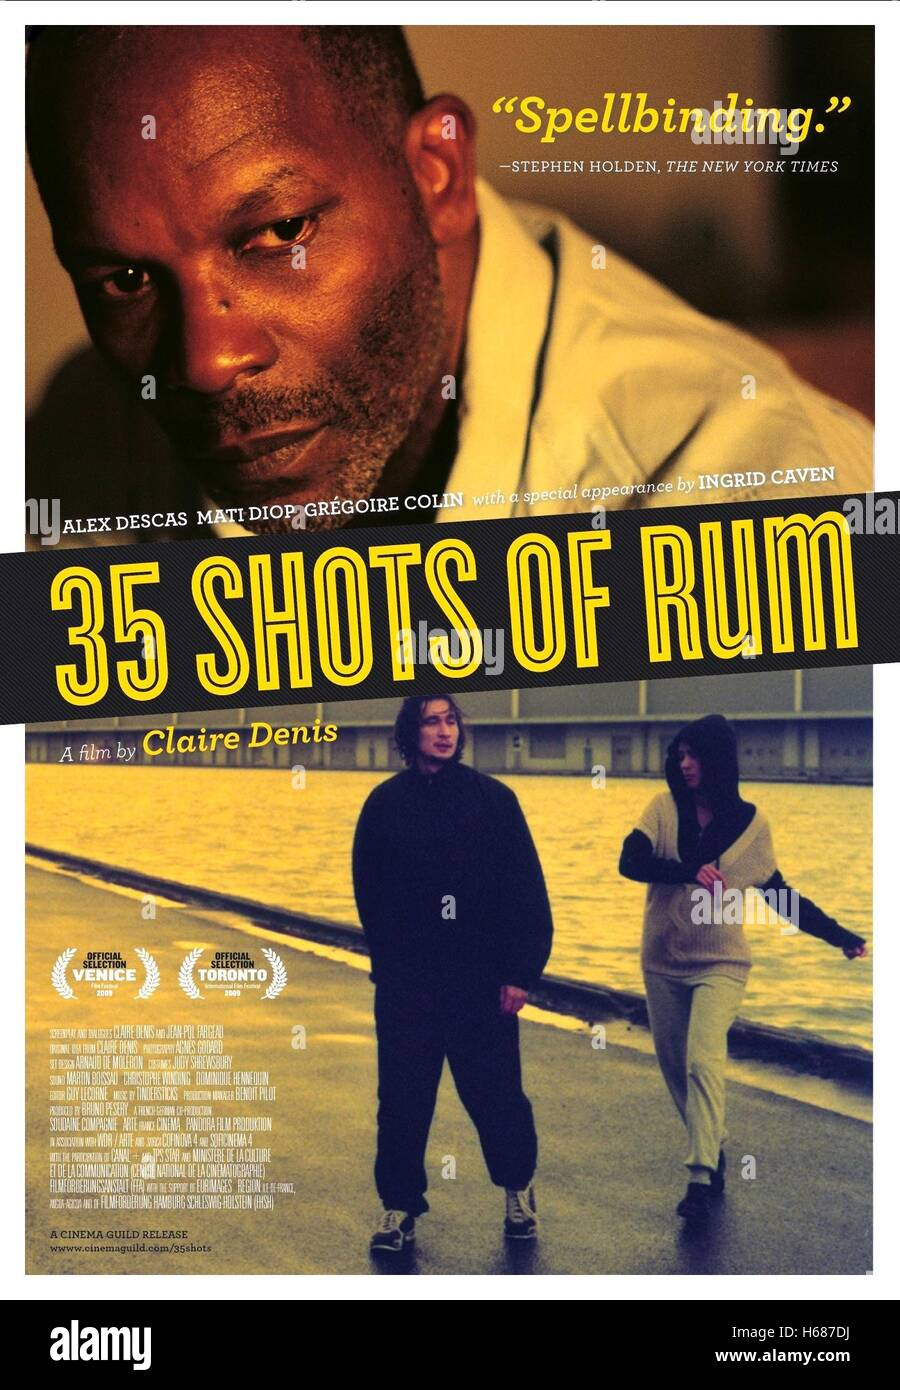 ALEX DESCAS POSTER 35 SHOTS OF RUM; 35 RHUMS (2008) - Stock Image